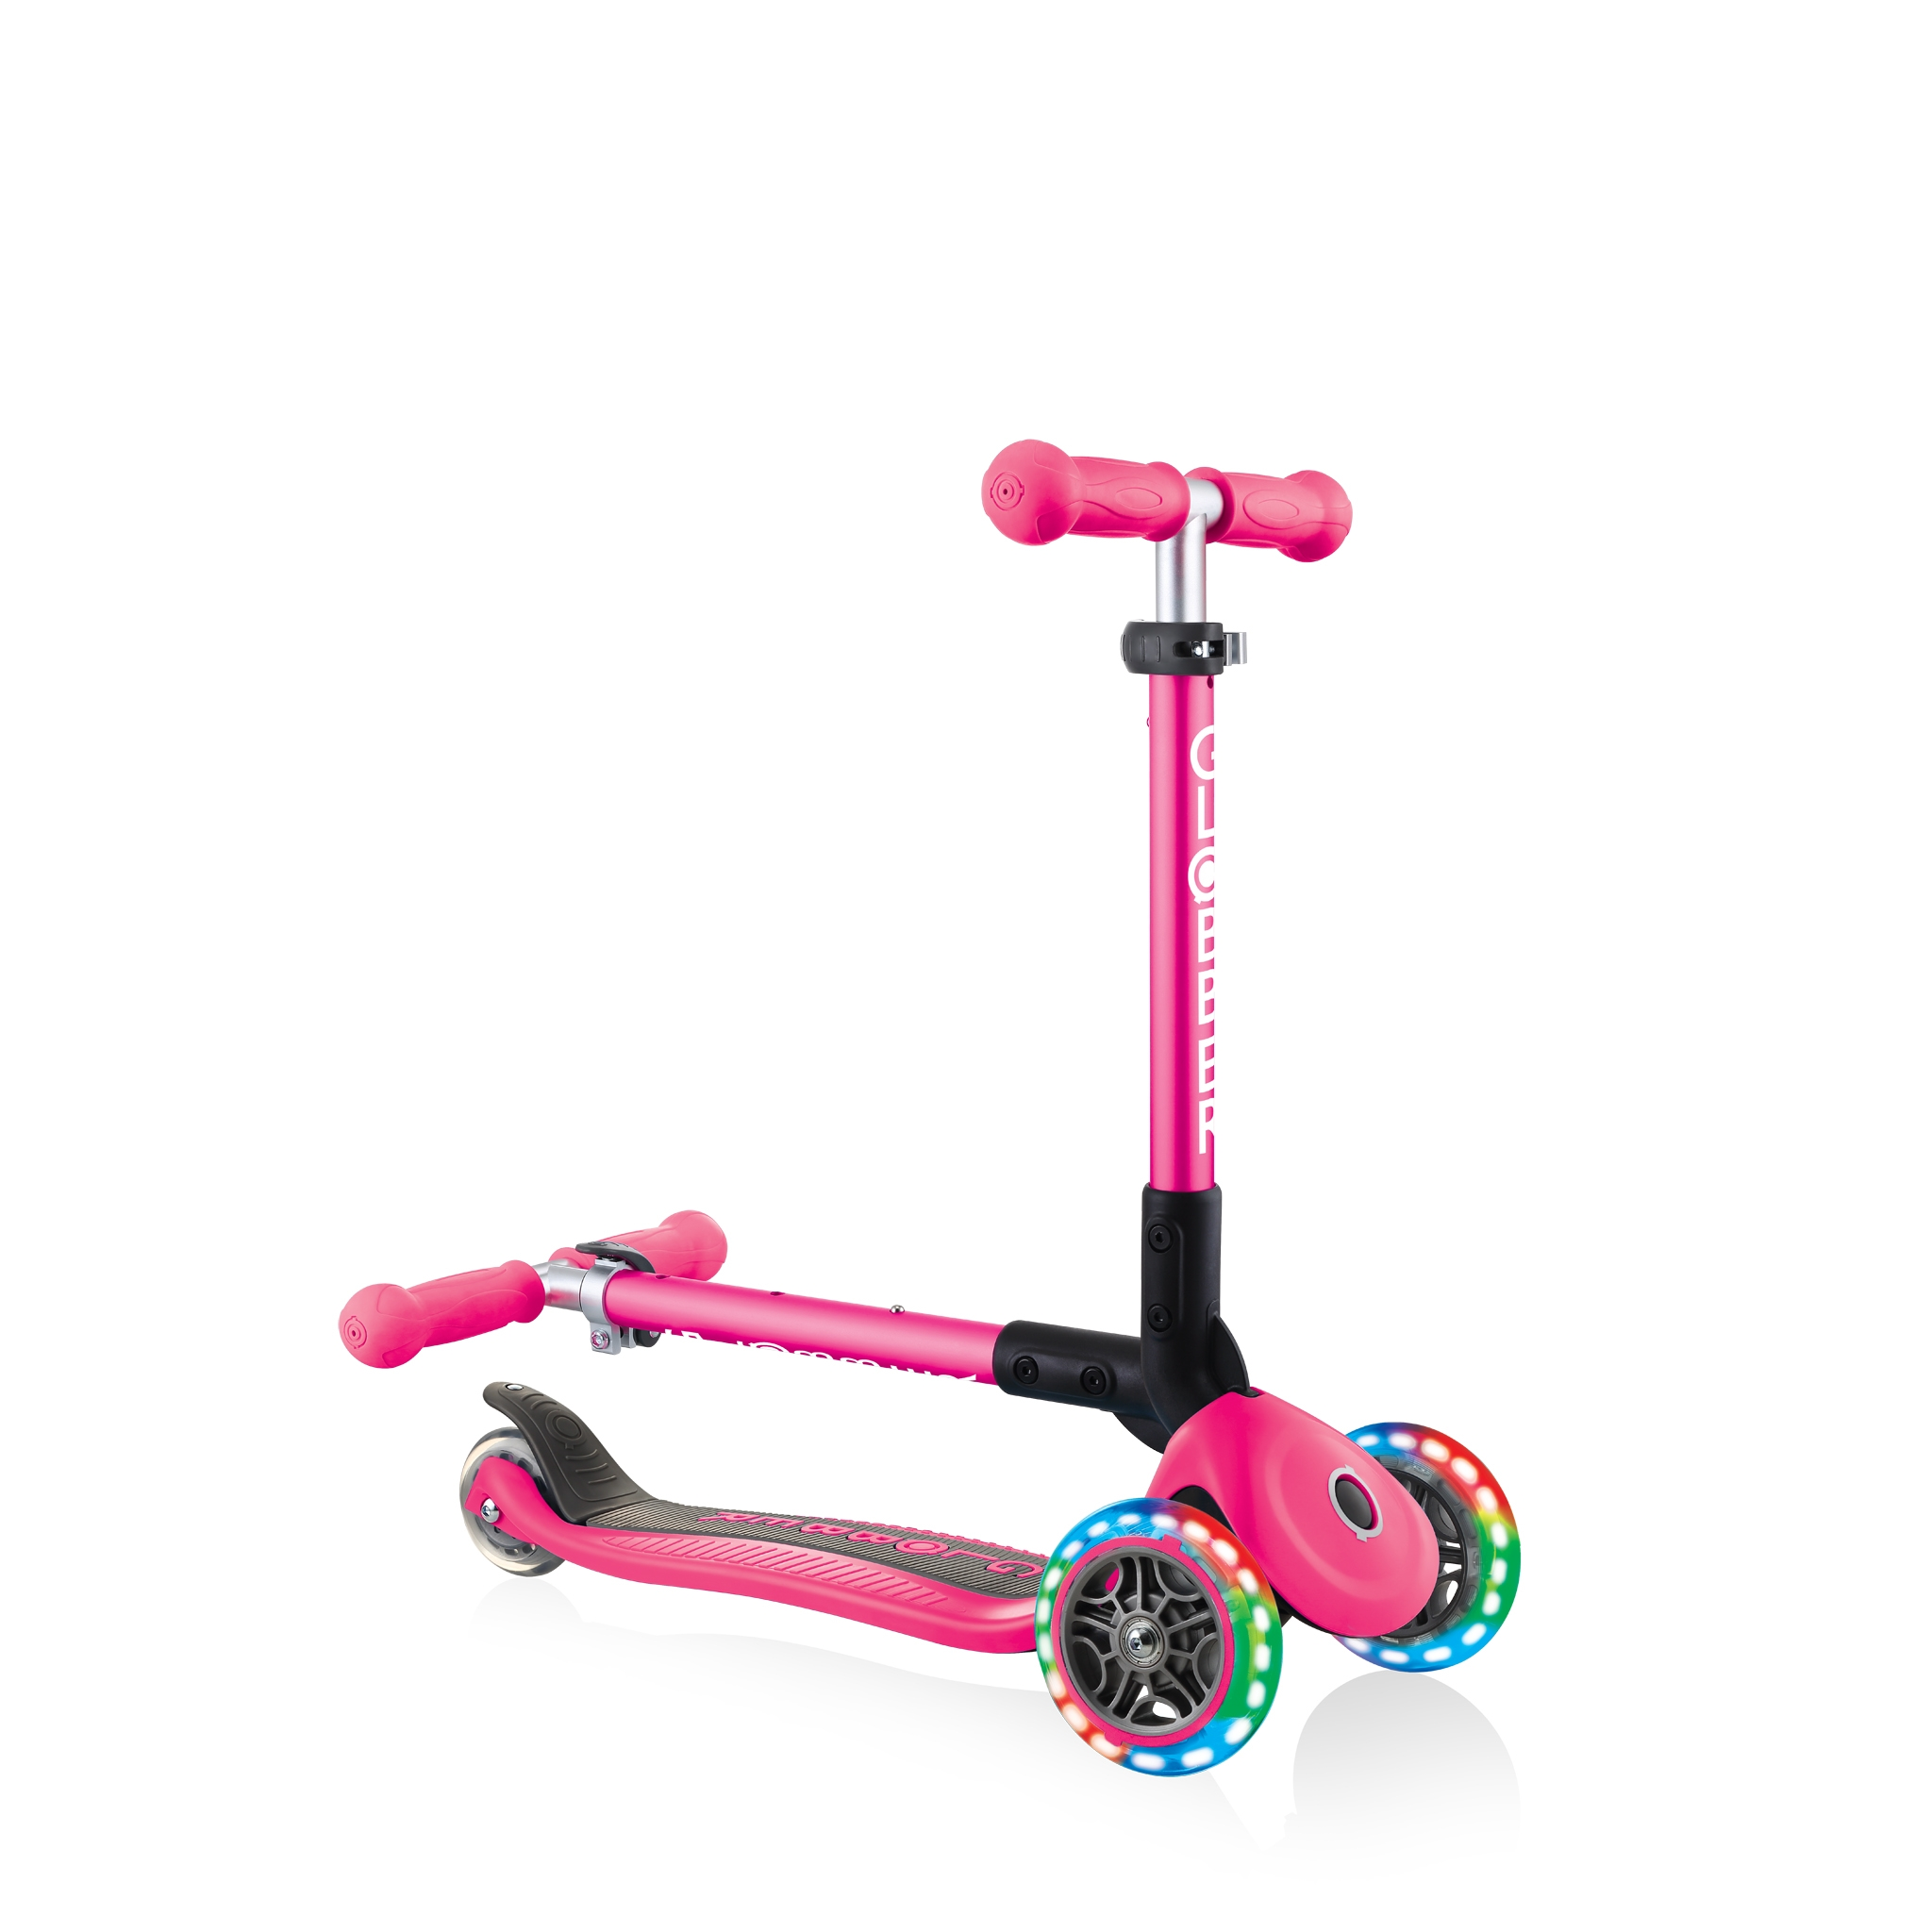 3-wheel-folding-light-up-scooter-for-toddlers-JUNIOR-FOLDABLE-LIGHTS